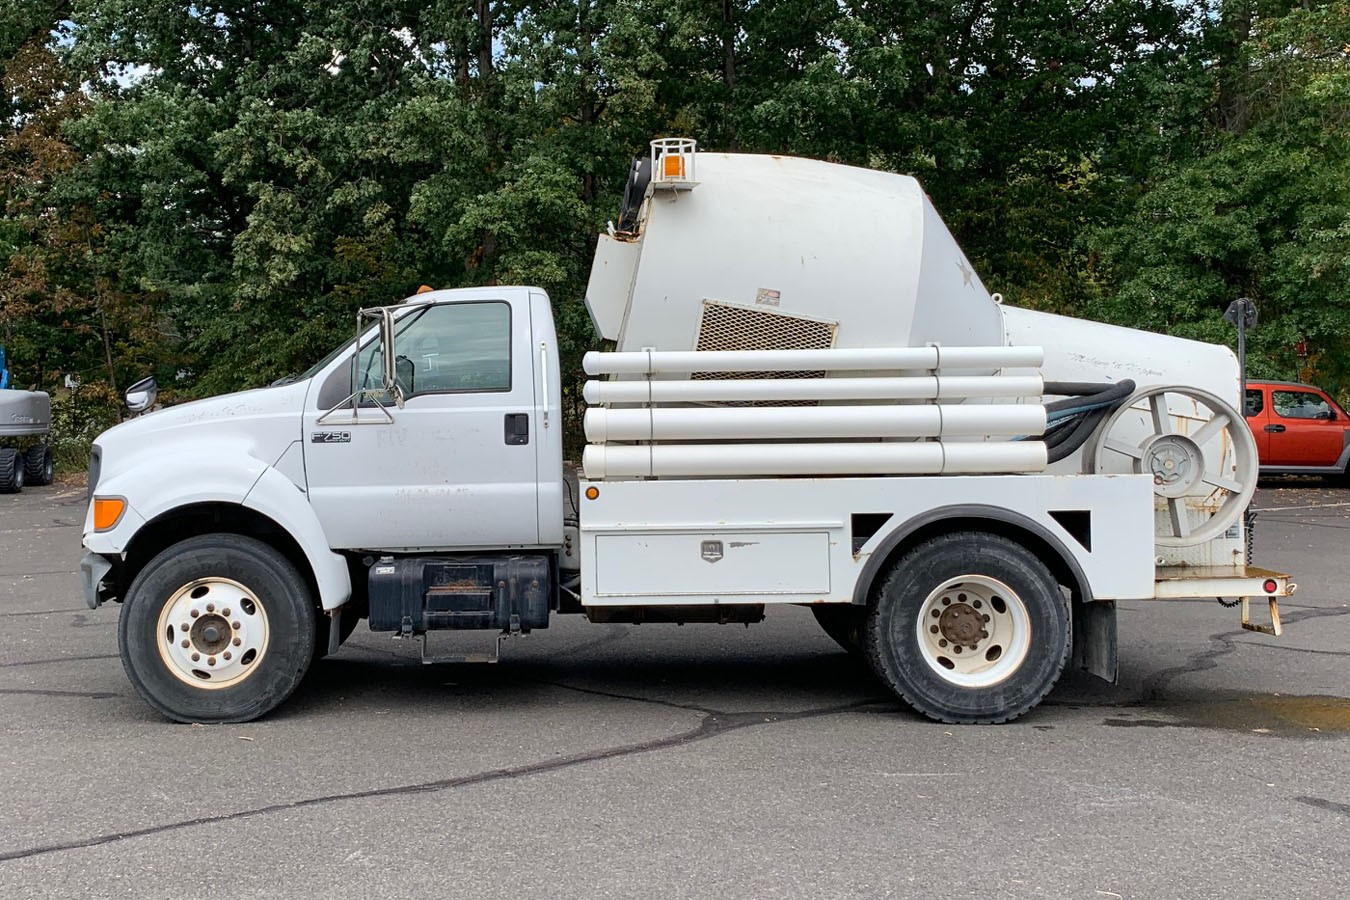 Used, 2001, Other, FORD F750 W/ OK CHAMPION POWER RODDER MODEL S660-36-ATO - MISC, Other